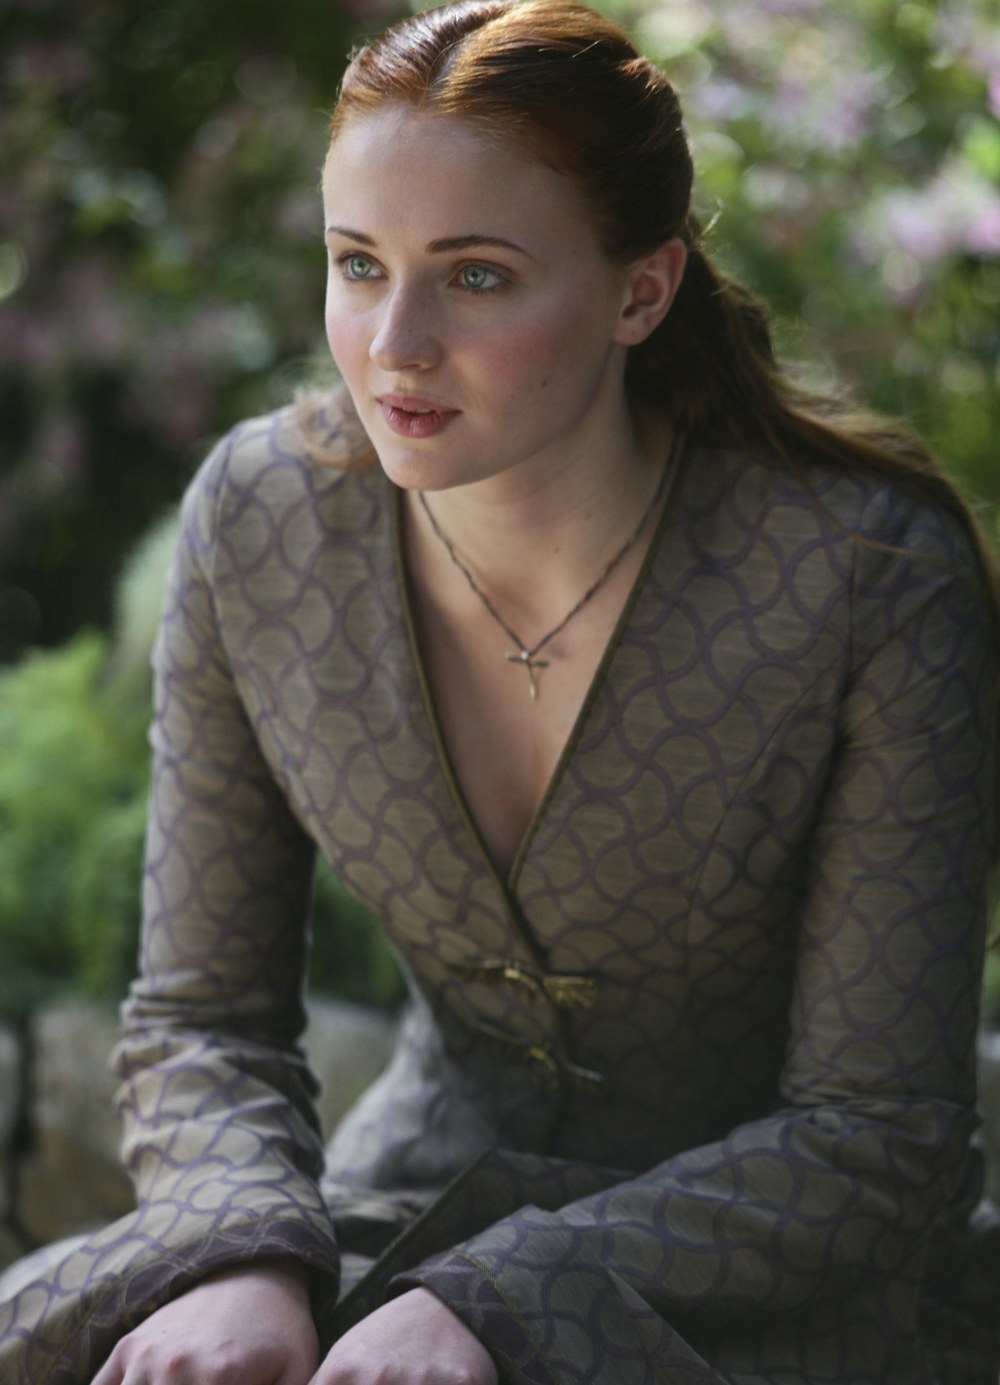 Sansa Stark wears a dress similar to Margery Tyrell on 'Game of Thrones'